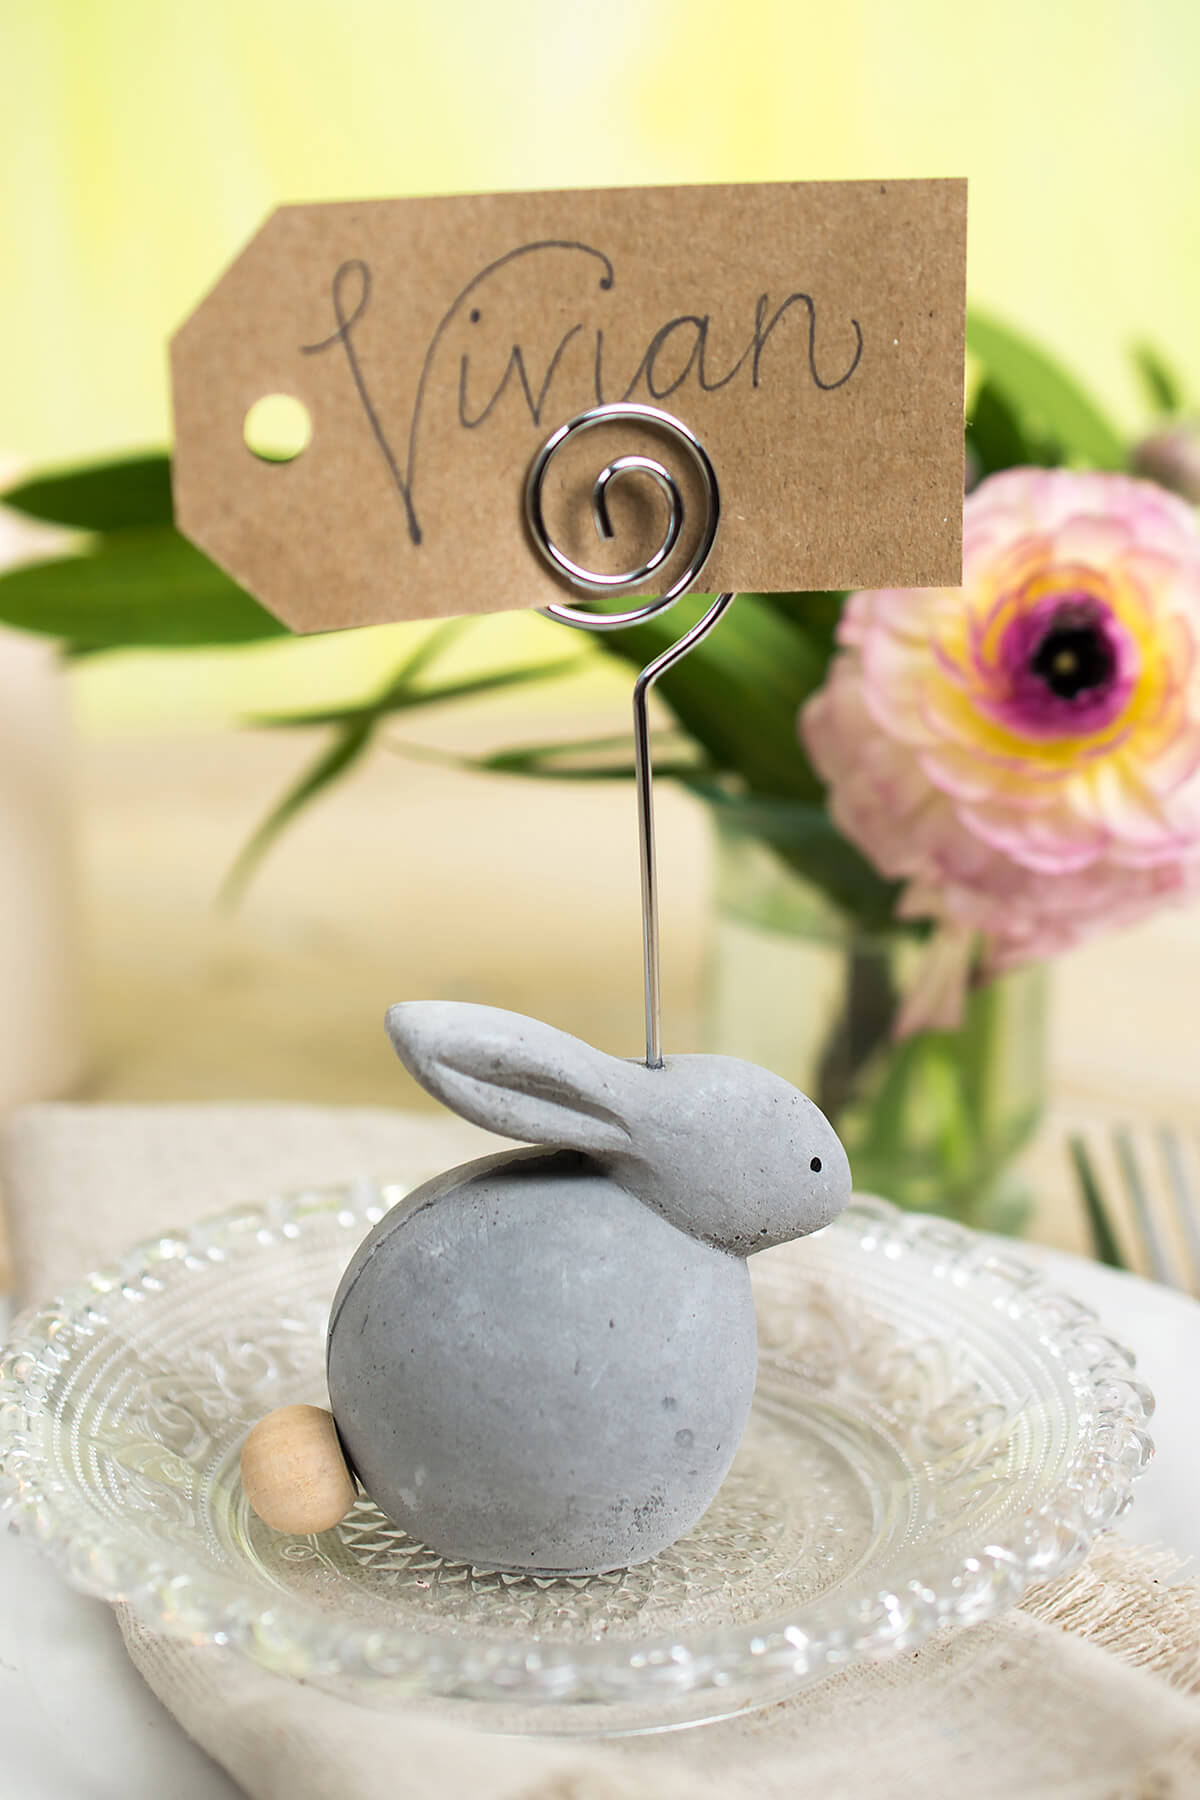 Bunny Placecard Holder Set 8 Pieces